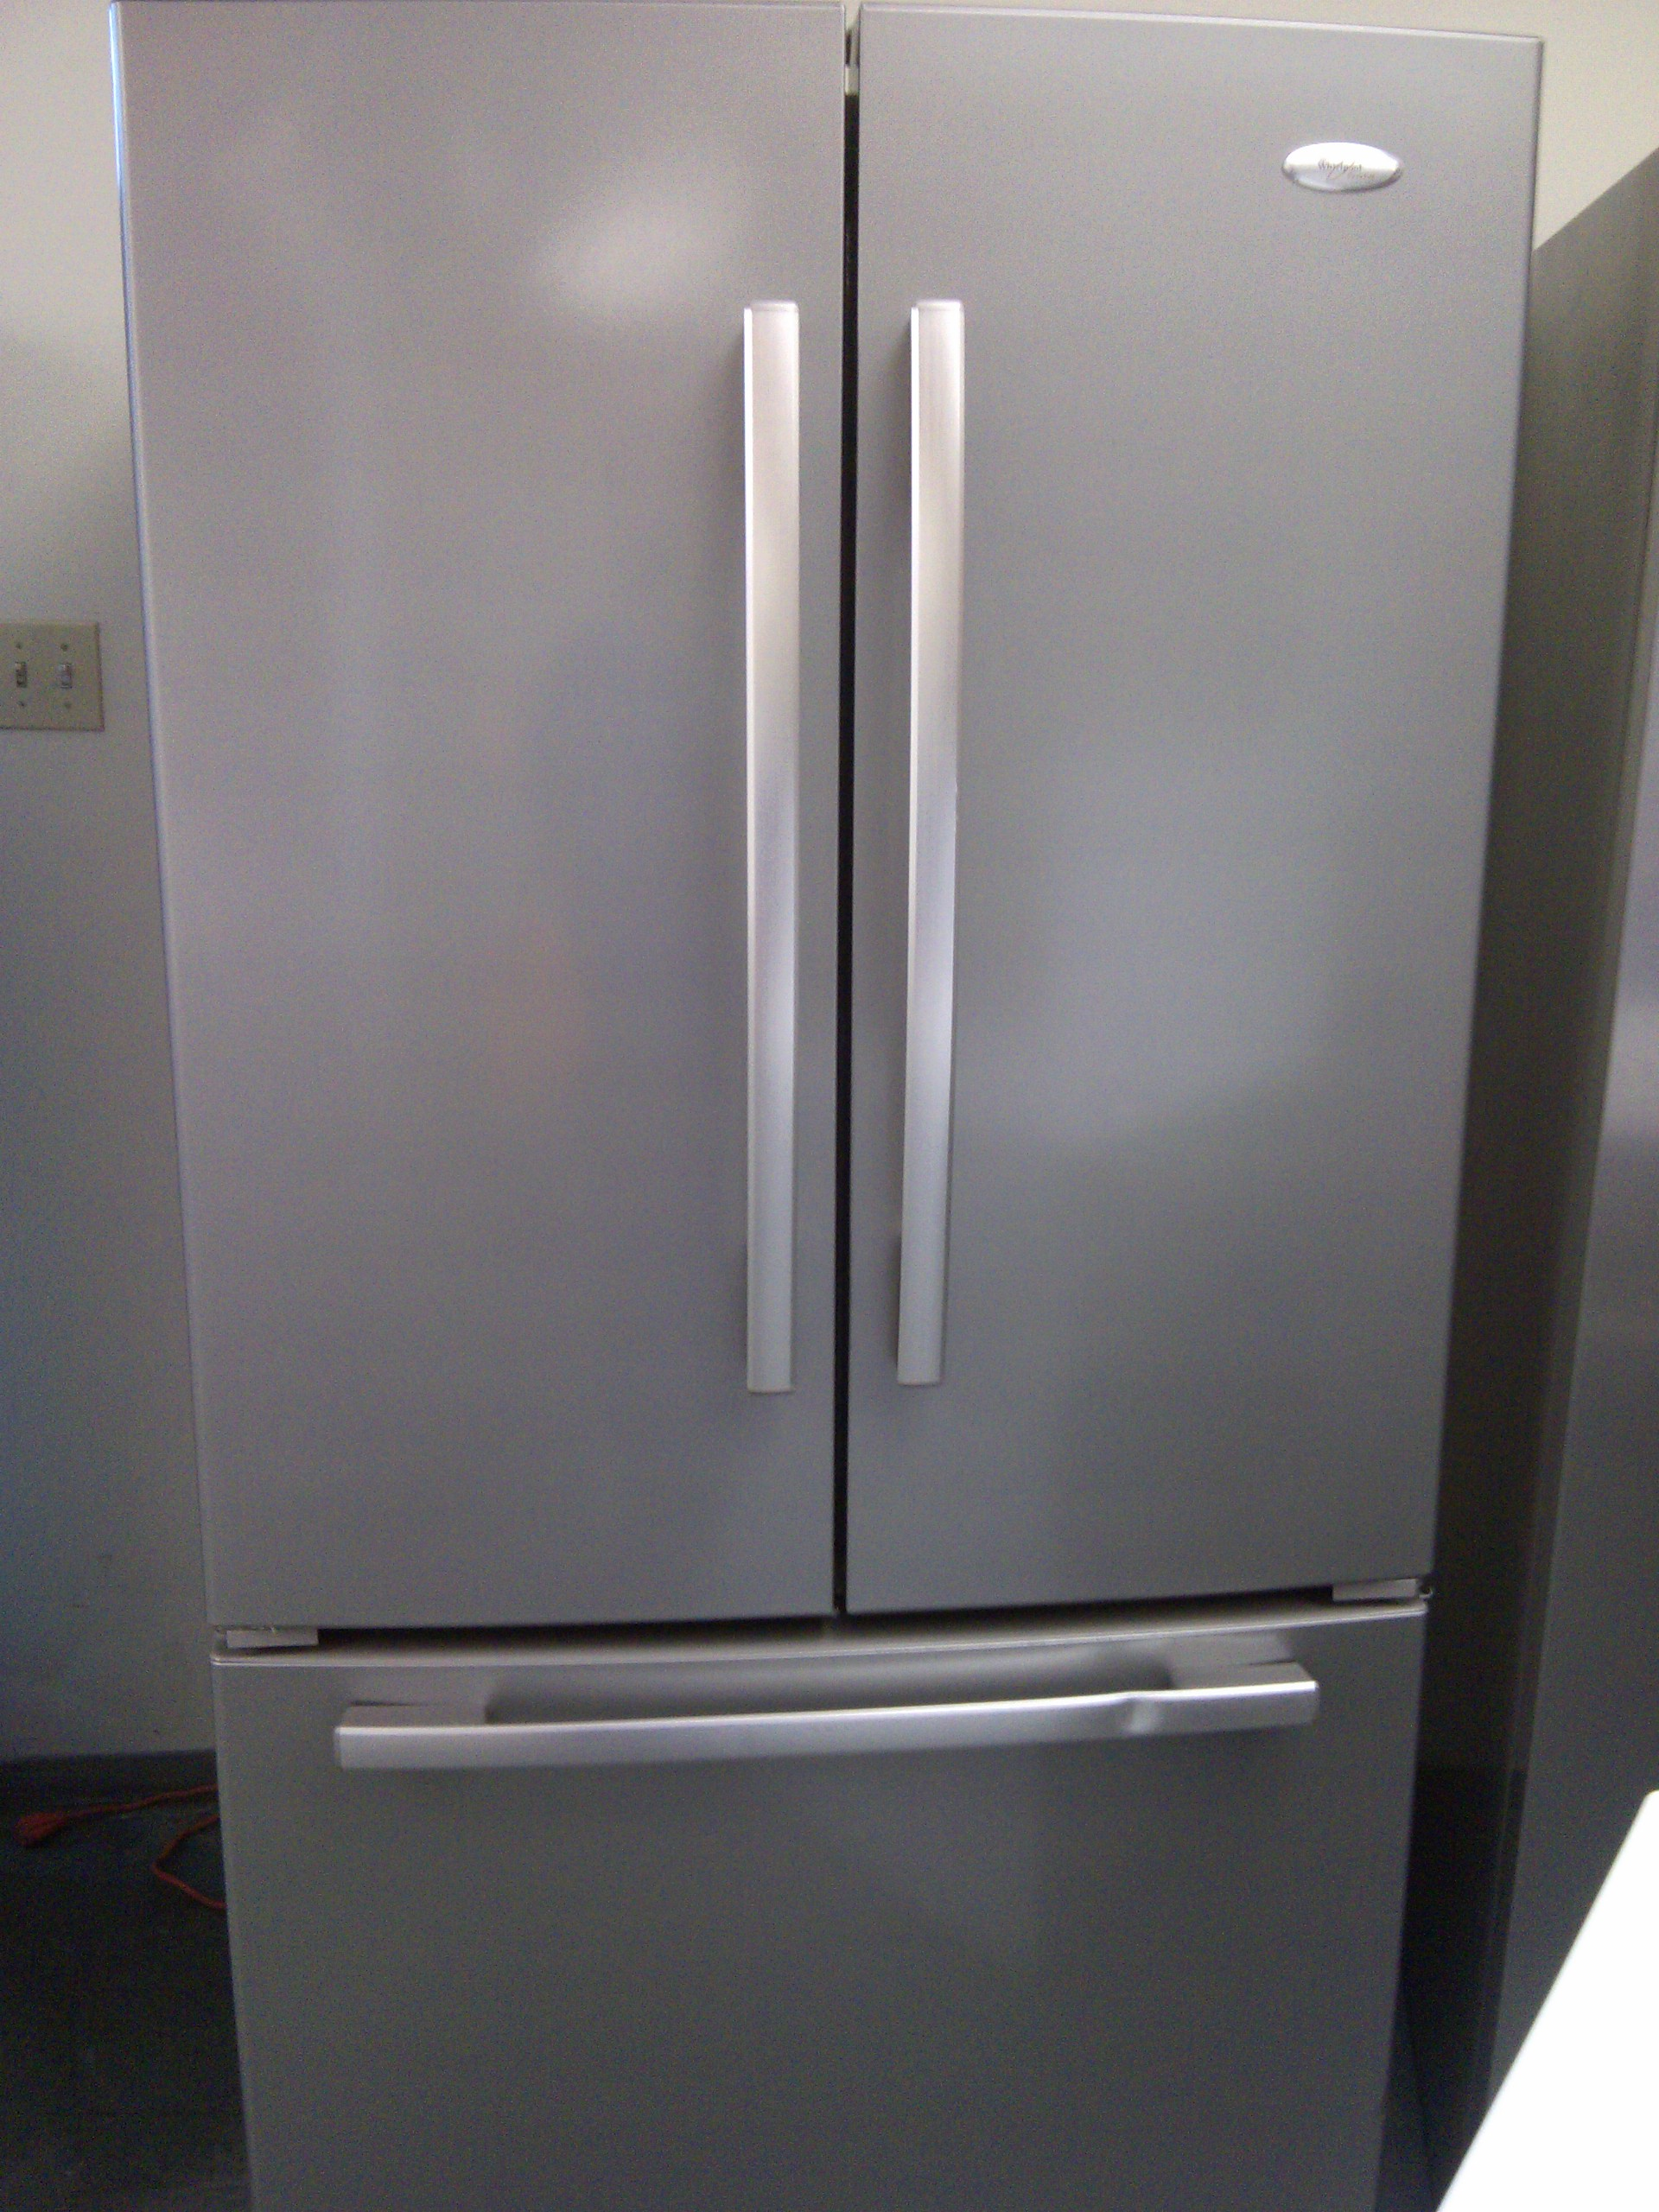 8 Whirlpool Gold Gx5shdxvd 248 Cuft French Door Refrigerator